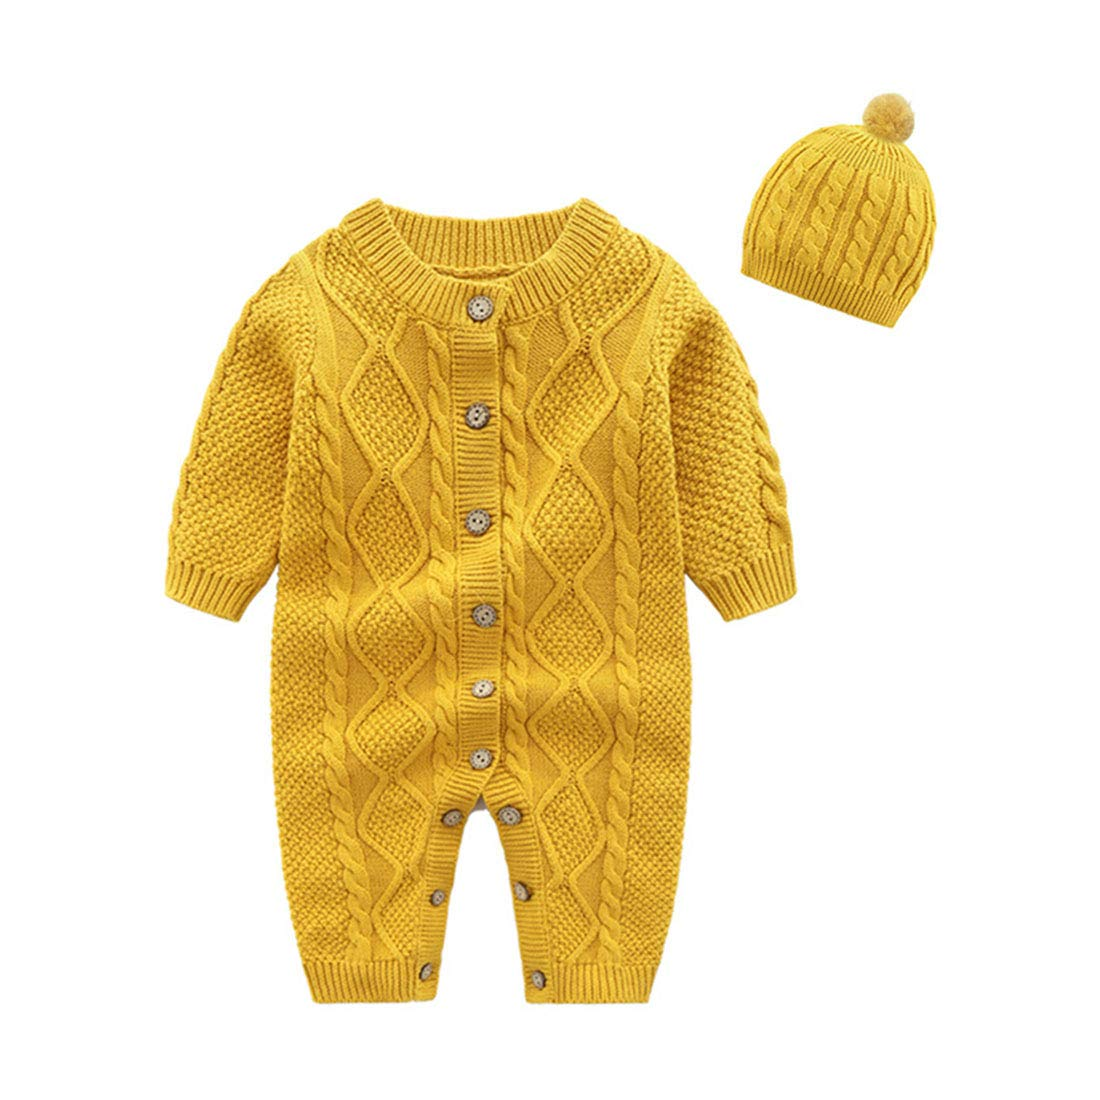 Mornyray Newborn Baby Girls Boys Sweater Jumpsuit Winter Knit Romper Clothes Size 0-3M (Ginger Yellow) by Mornyray